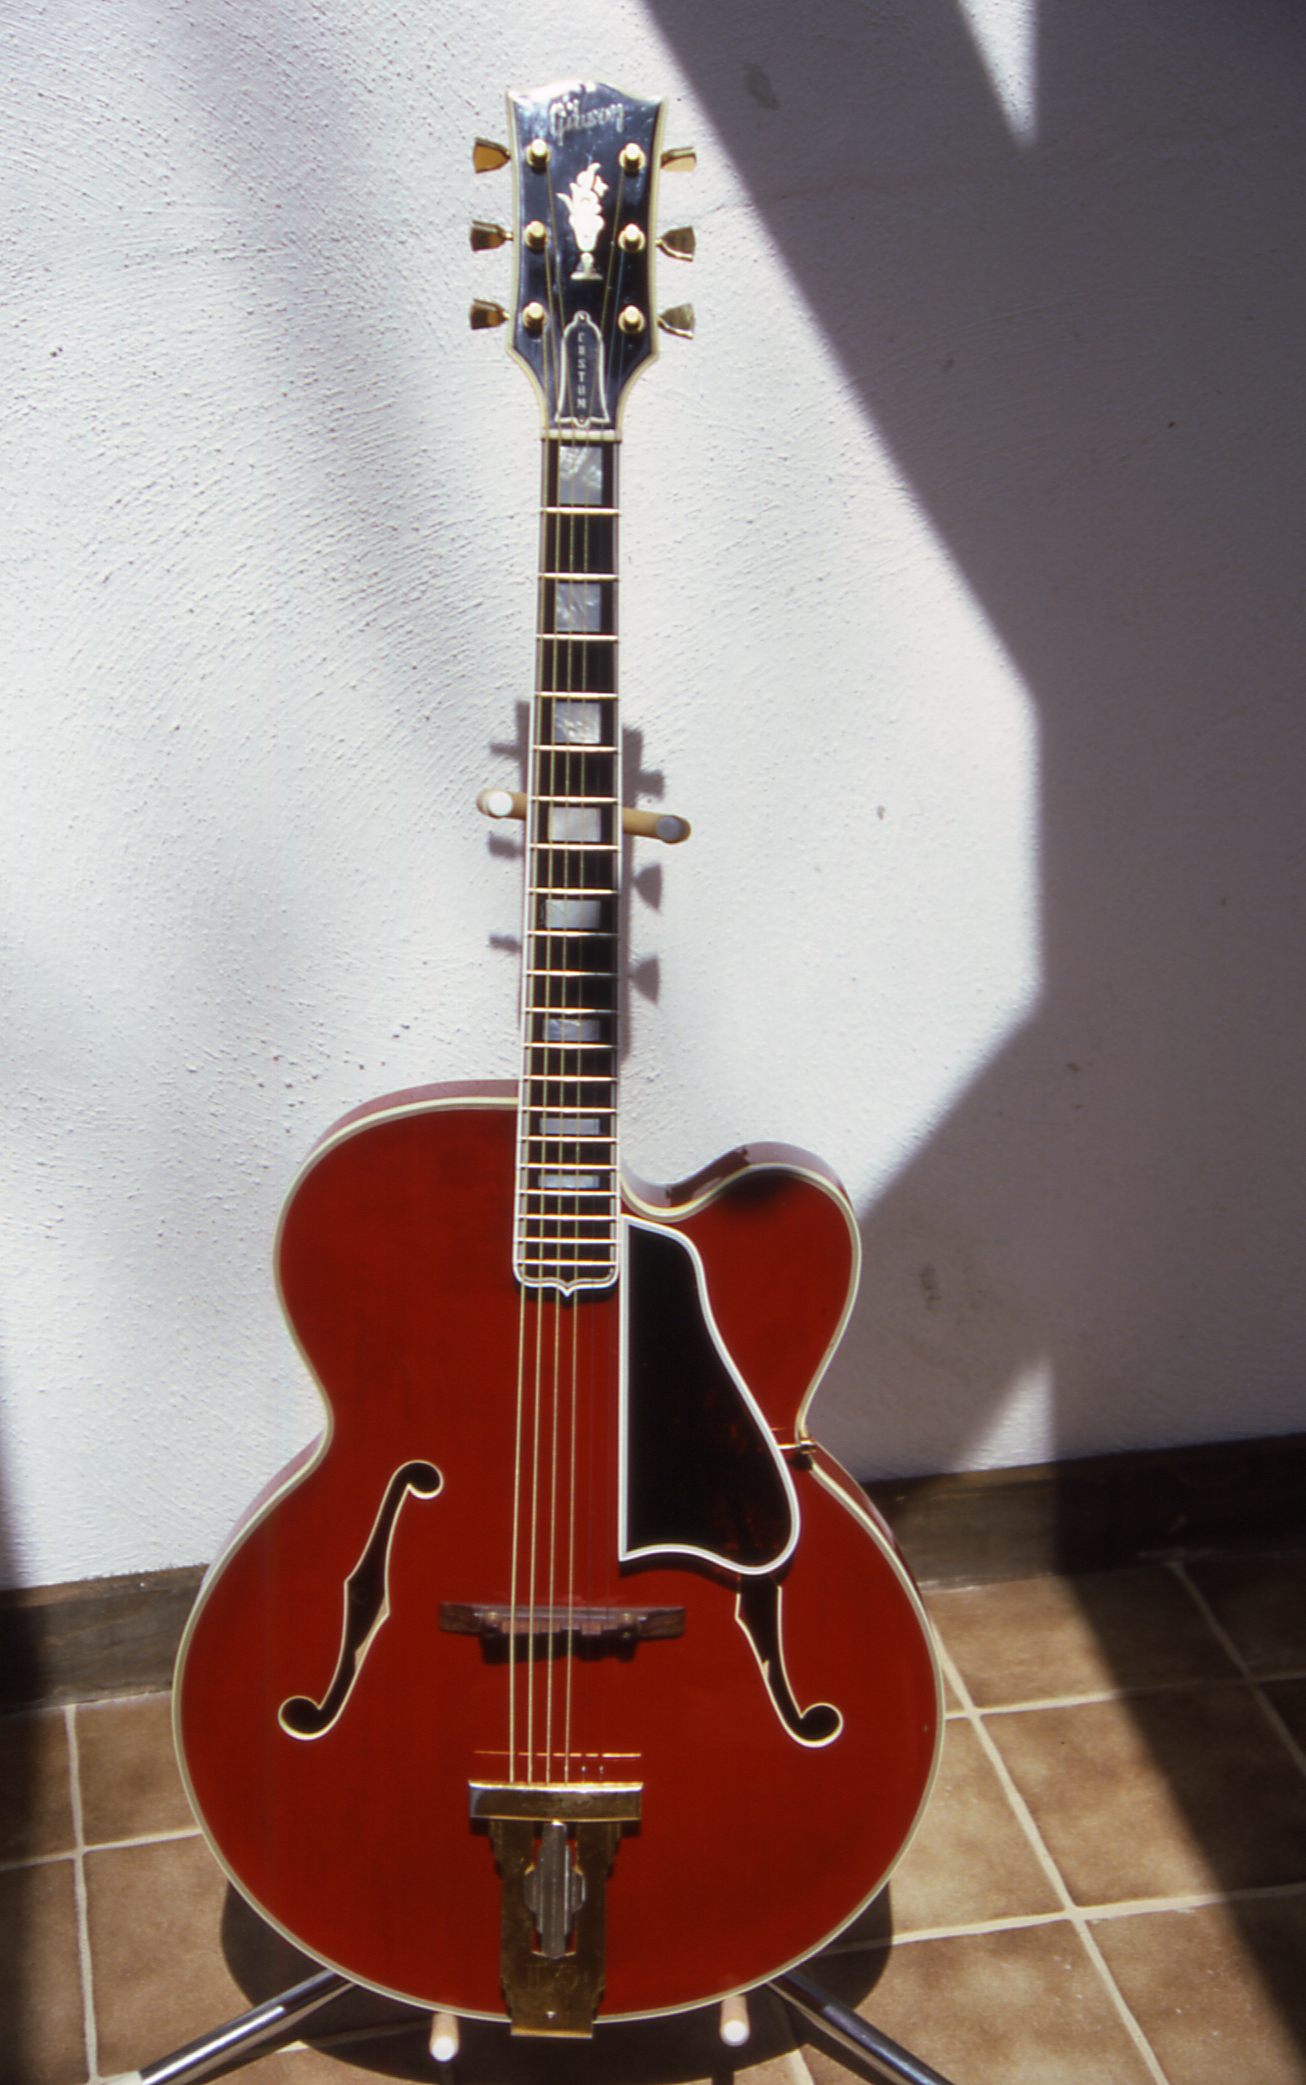 Your Gibson L-5 Choice-gobel-1960-front-jpg